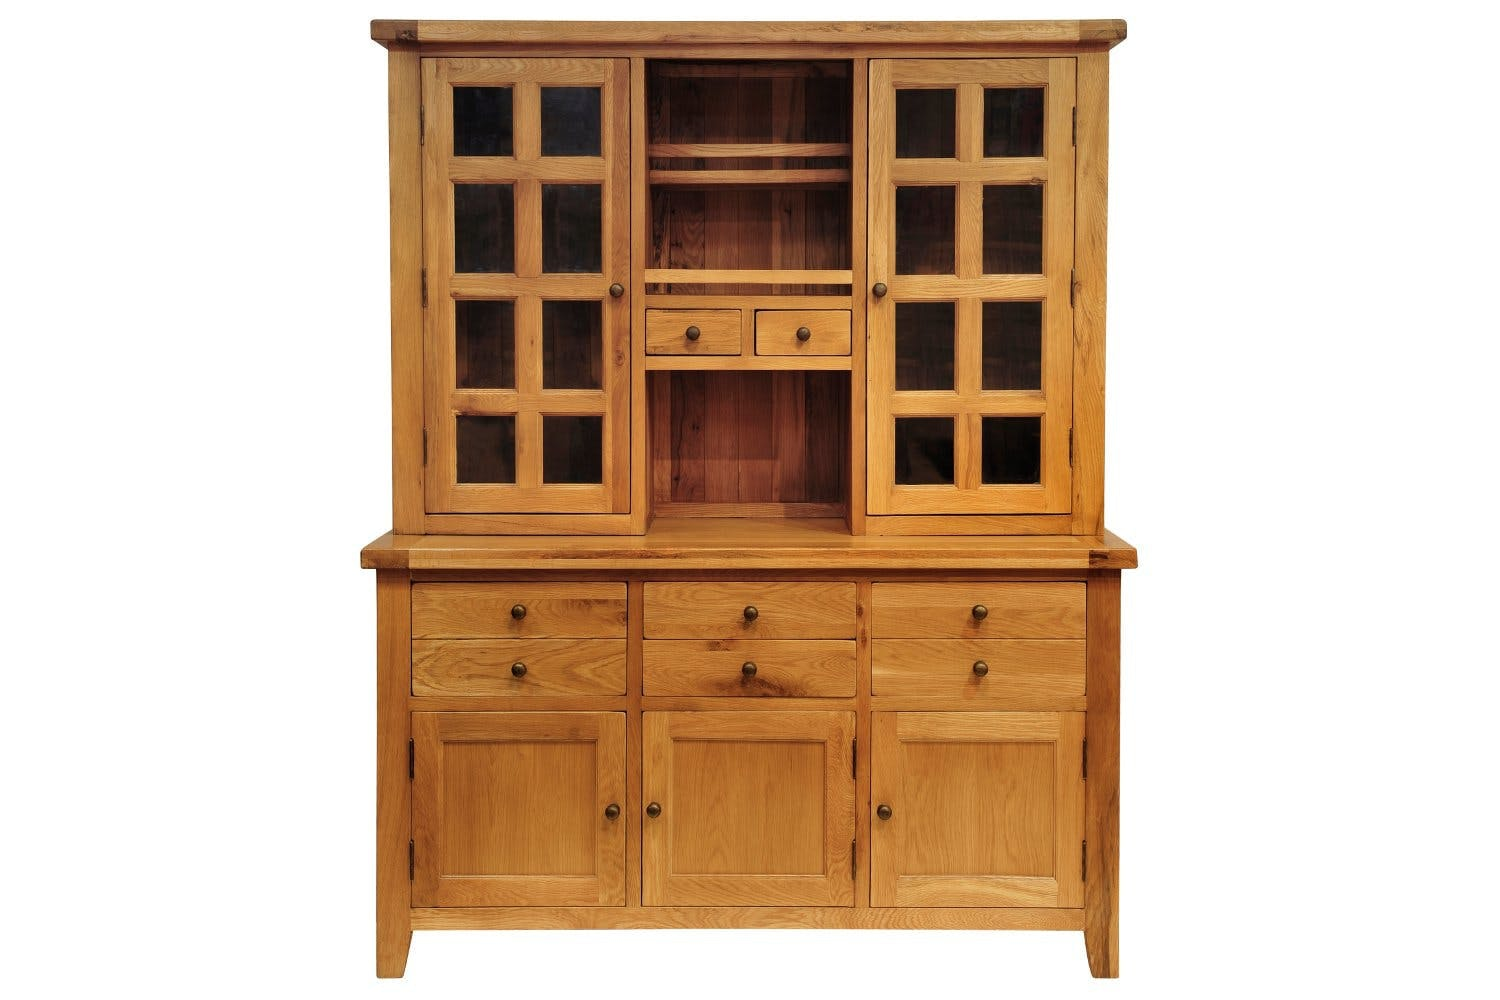 Wellington dresser straight